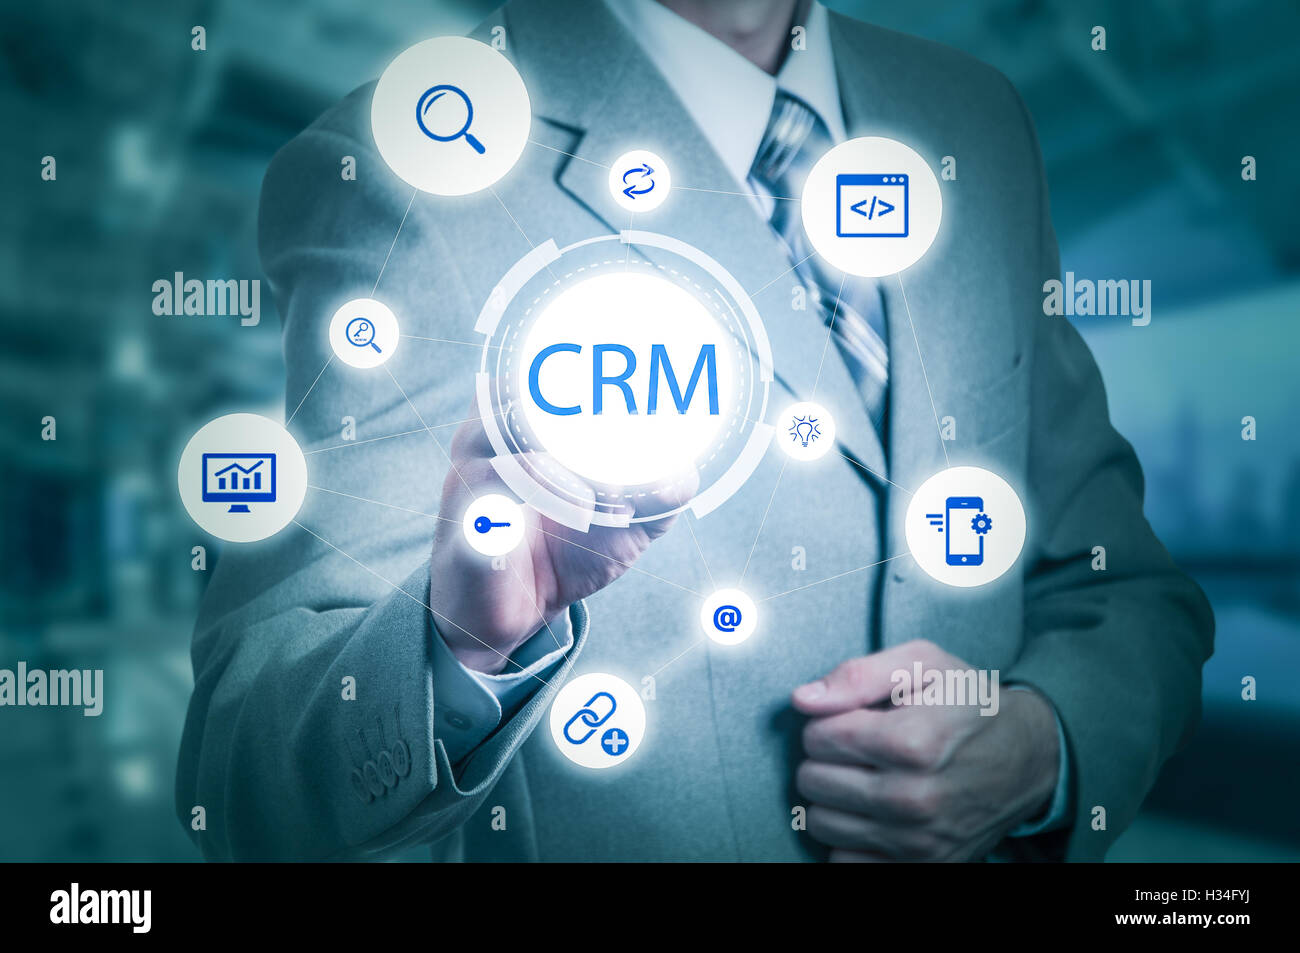 business, technology, internet and customer relationship management concept. Businessman pressing crm button on - Stock Image